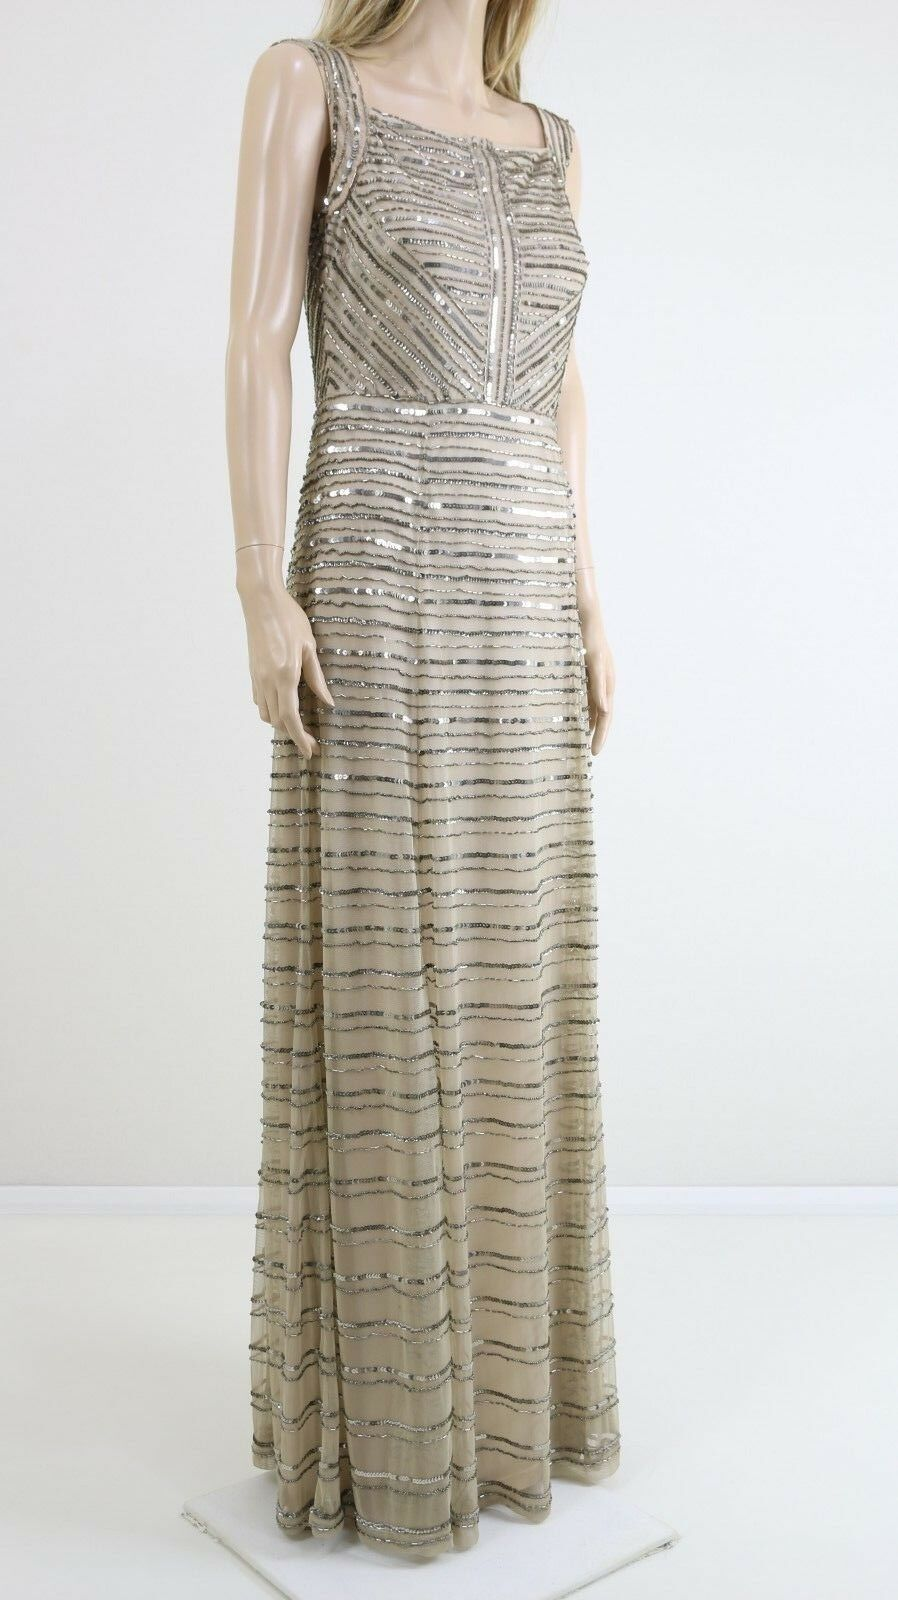 Gina Bacconi Cream Gold Square Neck Embellished Cocktail Maxi Party Dress 12 40